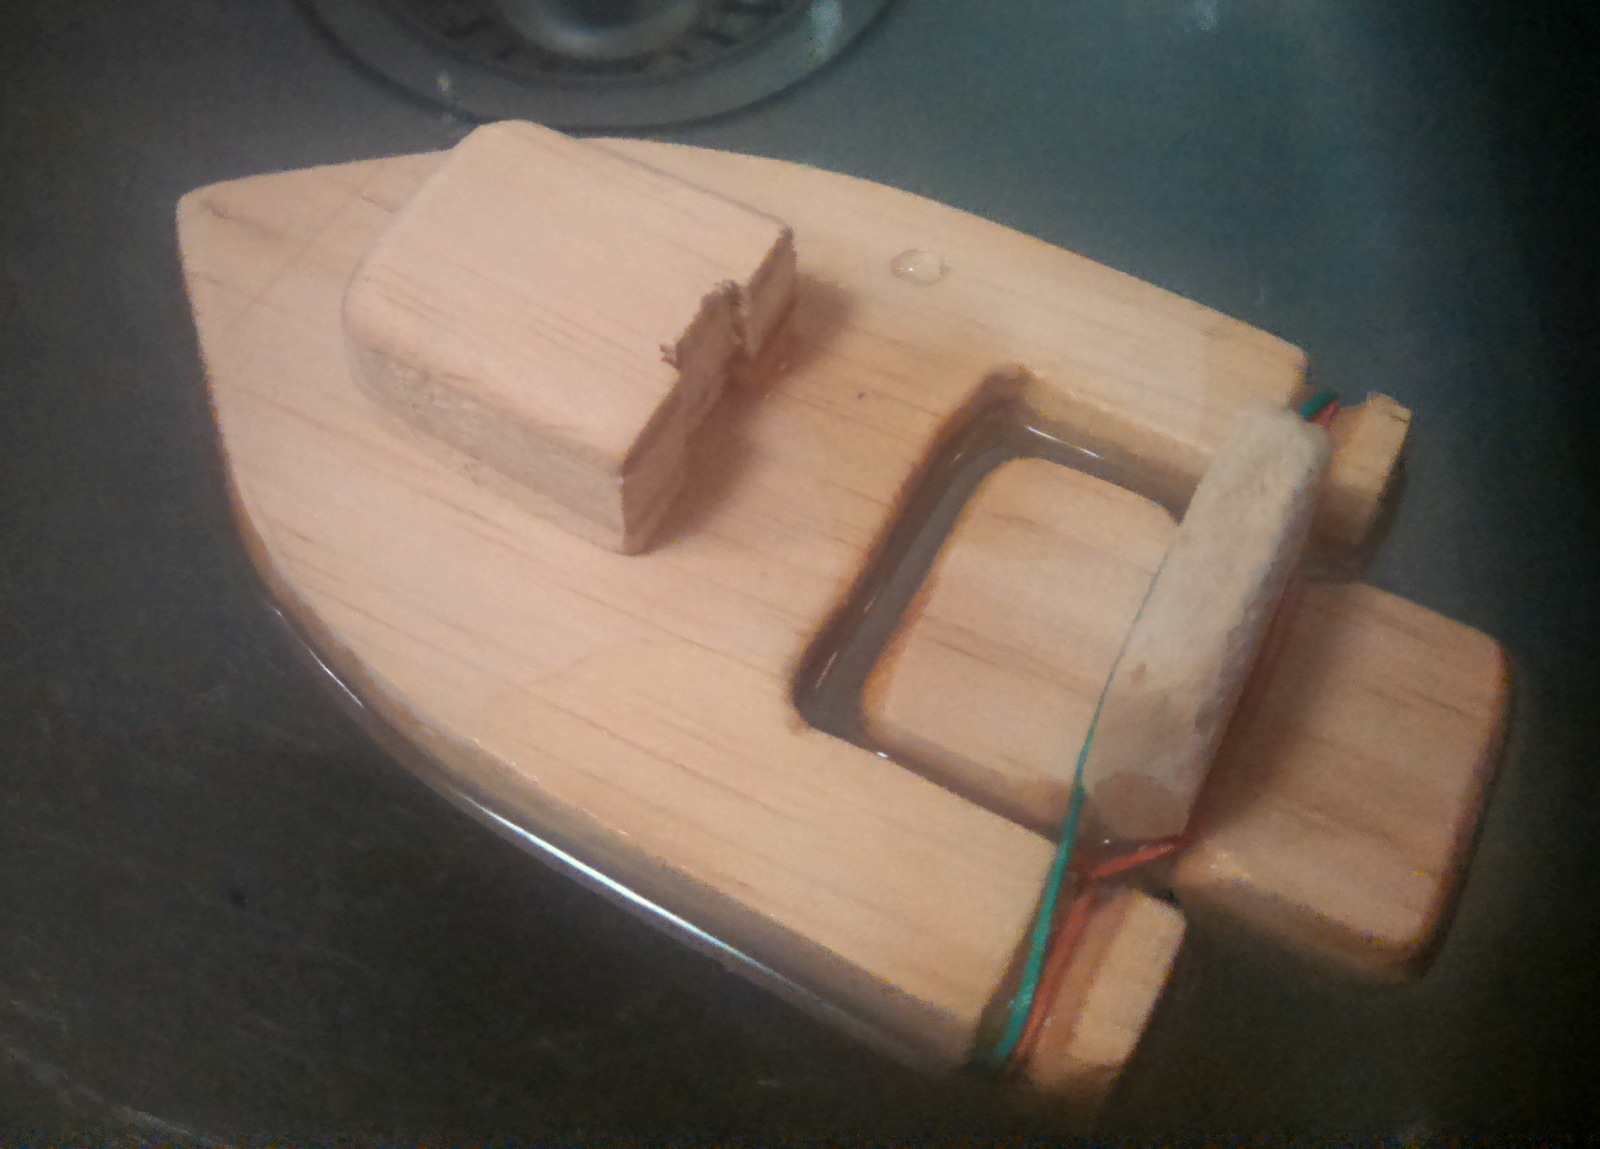 Making Wood Toys Floats My Boat